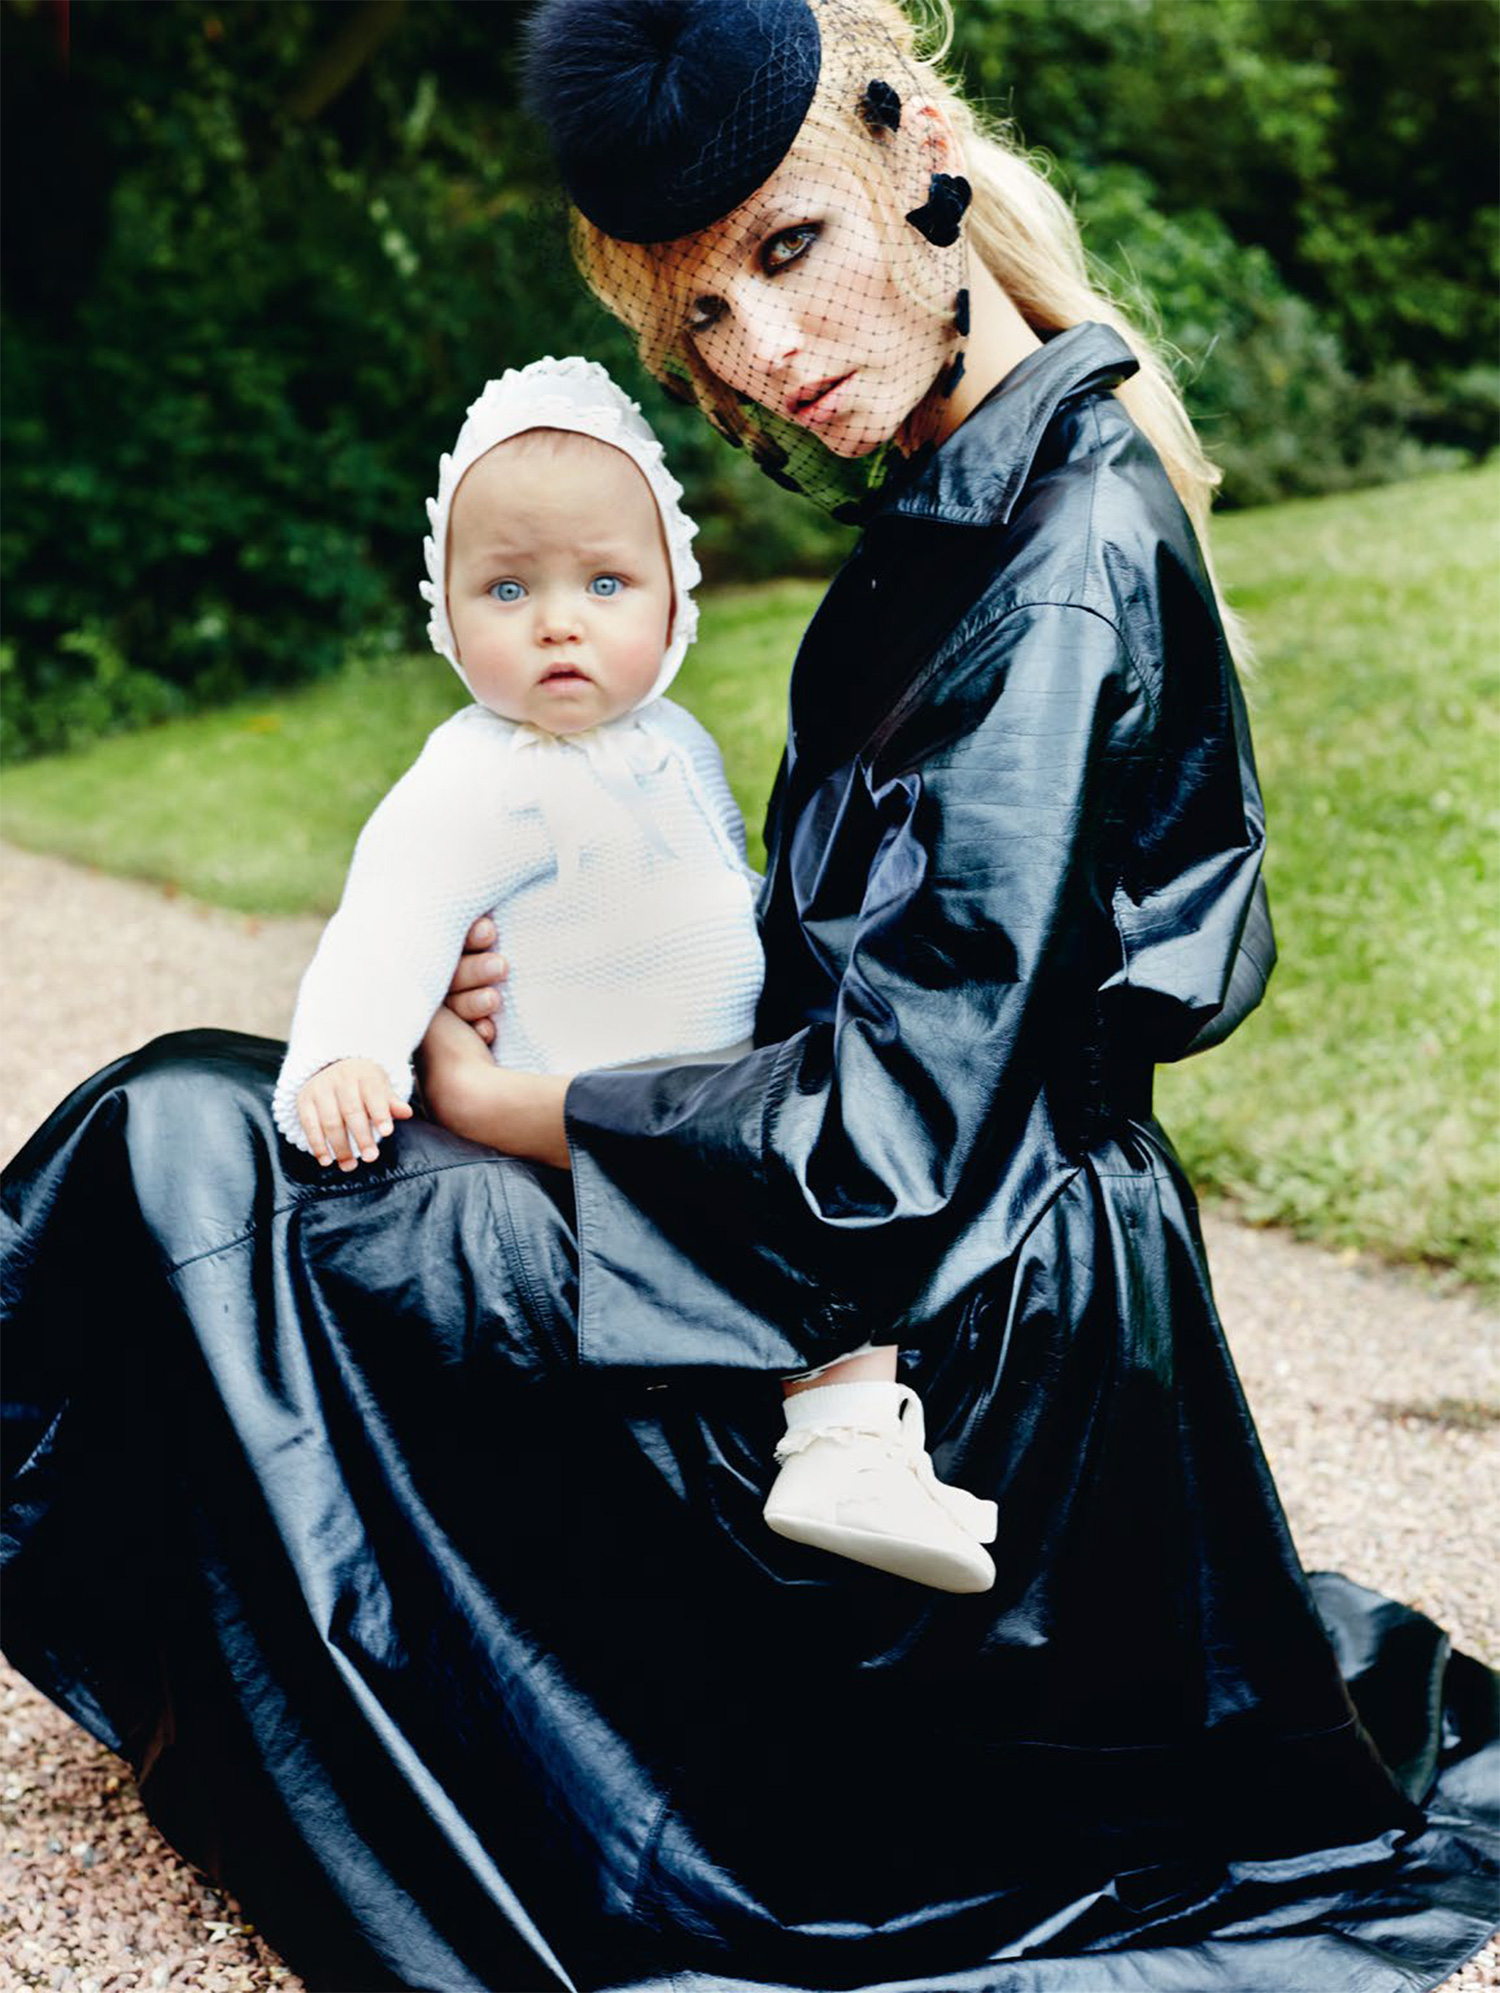 baby-natasha-poly-vogue@2x